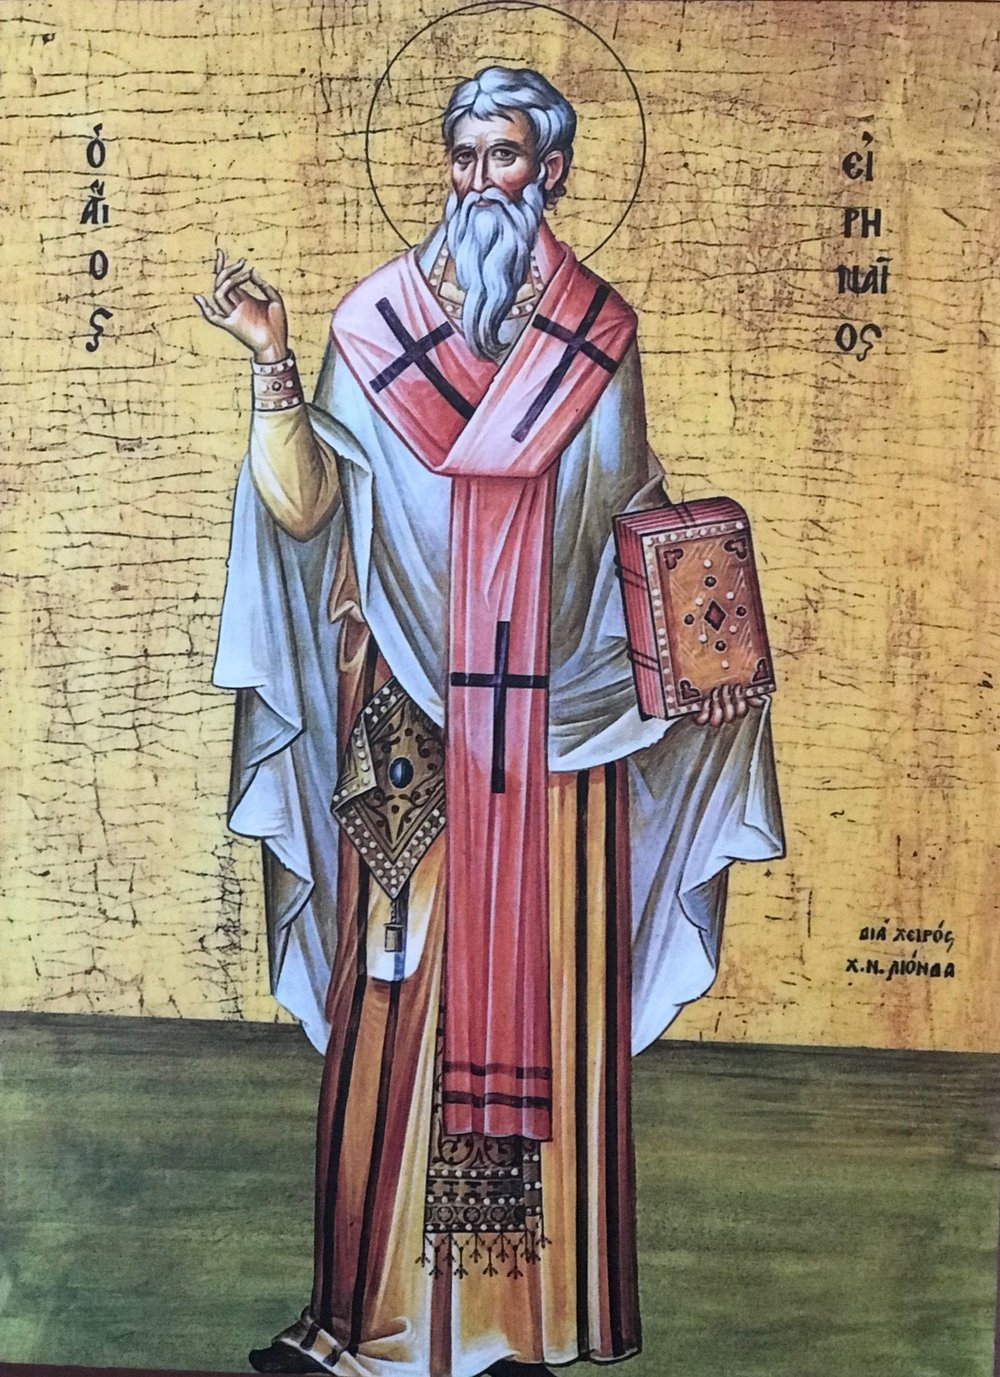 """BELONG BELIEVE BEHOLD BECOME …fully alive - """"The glory of God is a human being fully alive; and the life of human beings consists in beholding the vision of God"""" St. Irenaeus of Lyons, 2nd C."""